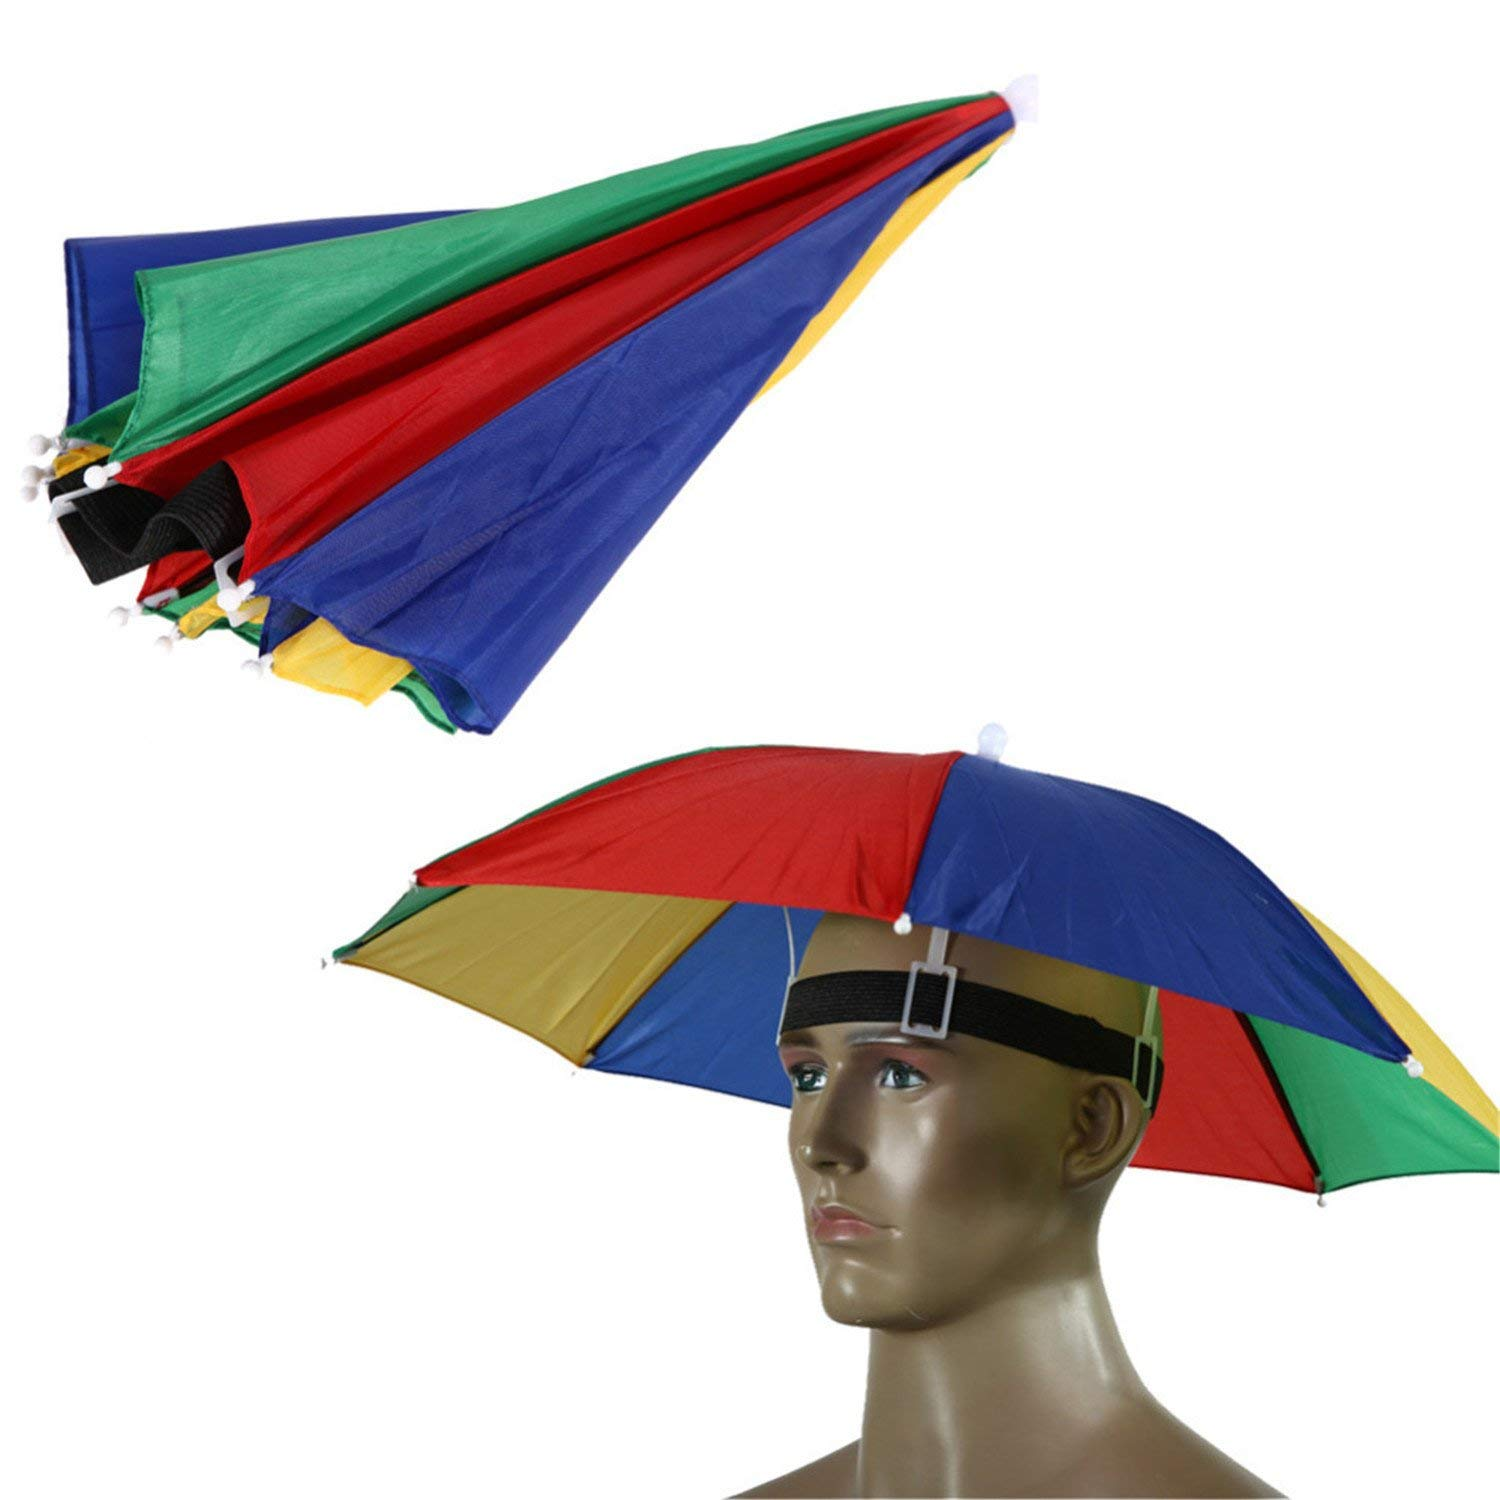 efe42aa797df8 Get Quotations · 55 Cm Hands Free Usefull Umbrella Hat Camping Fishing  Hiking Festivals Outdoor Parasol Umbrella Hat Cap